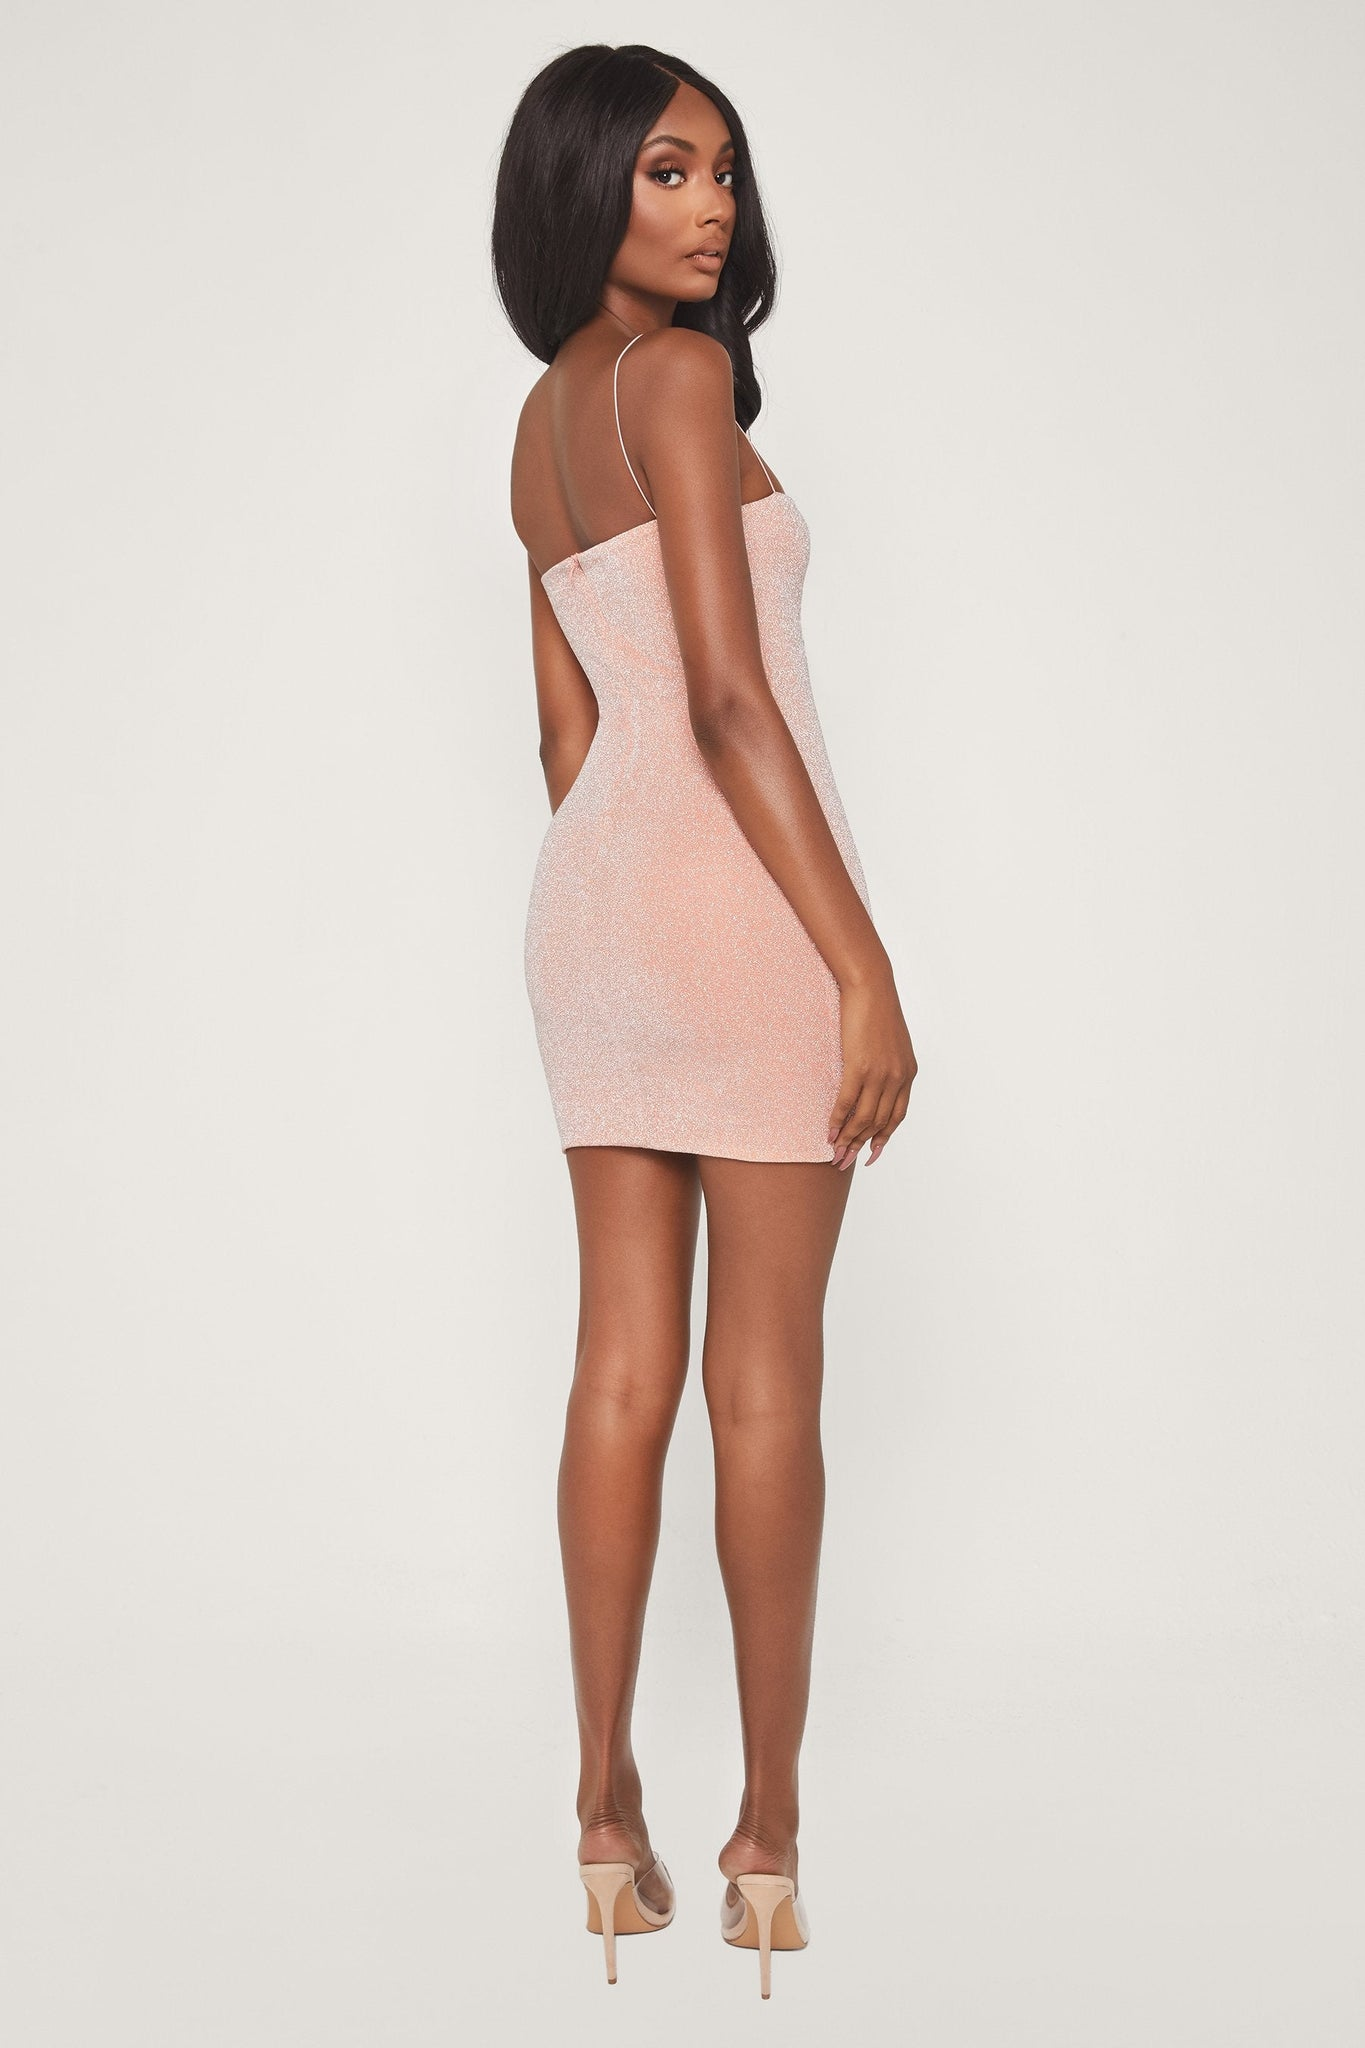 Mia Thin Strap Shimmer Dress - Apricot - MESHKI